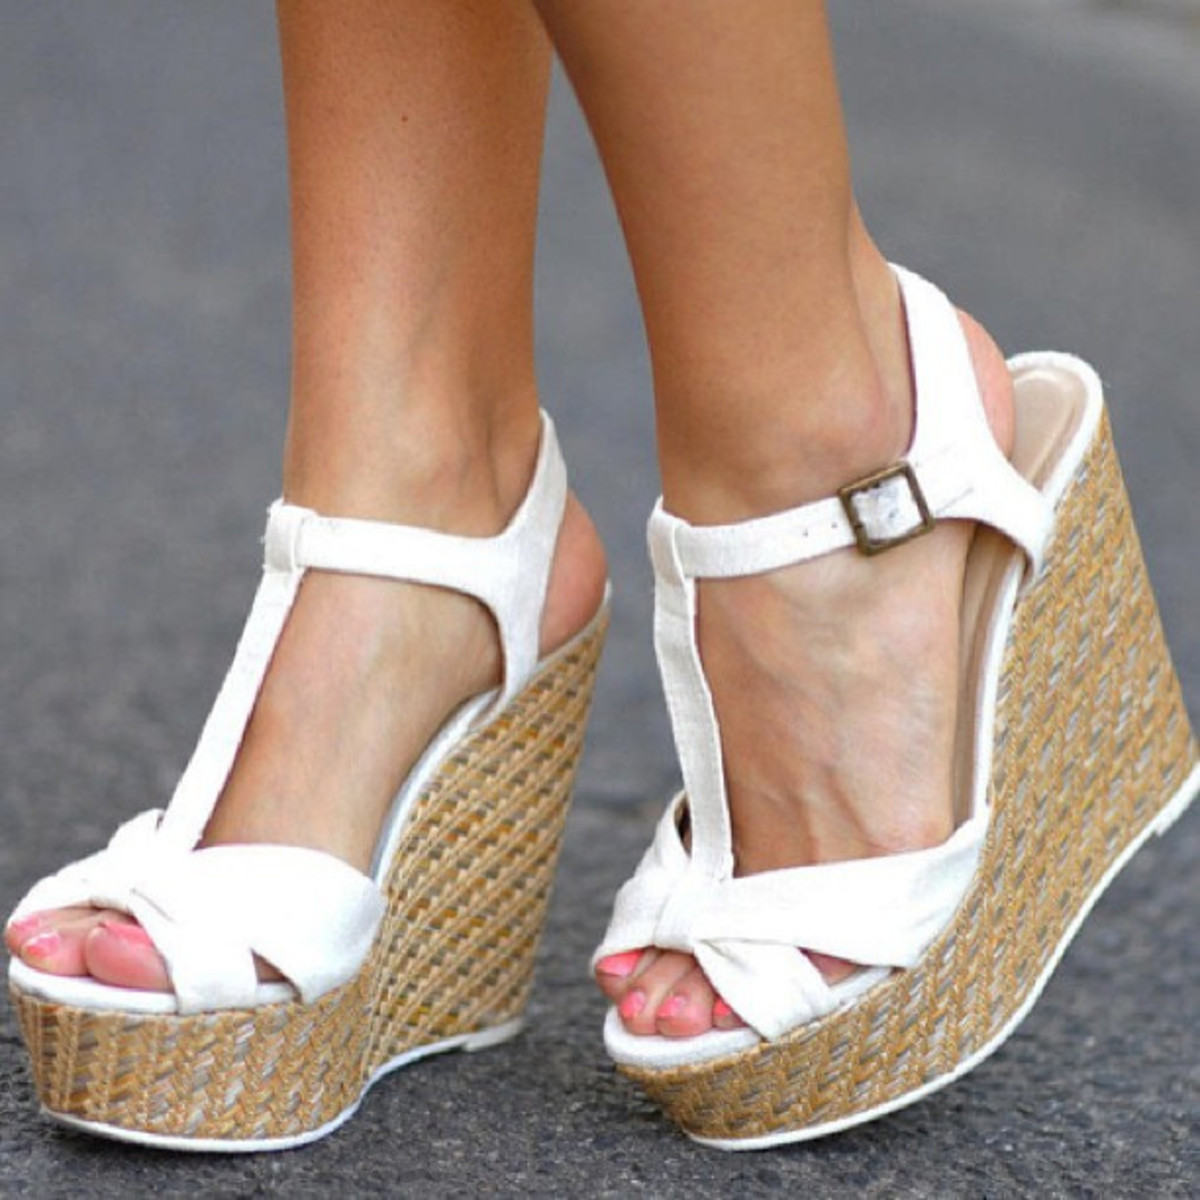 Wedges are a cute addition to any spring/summer '50s shoe collection.